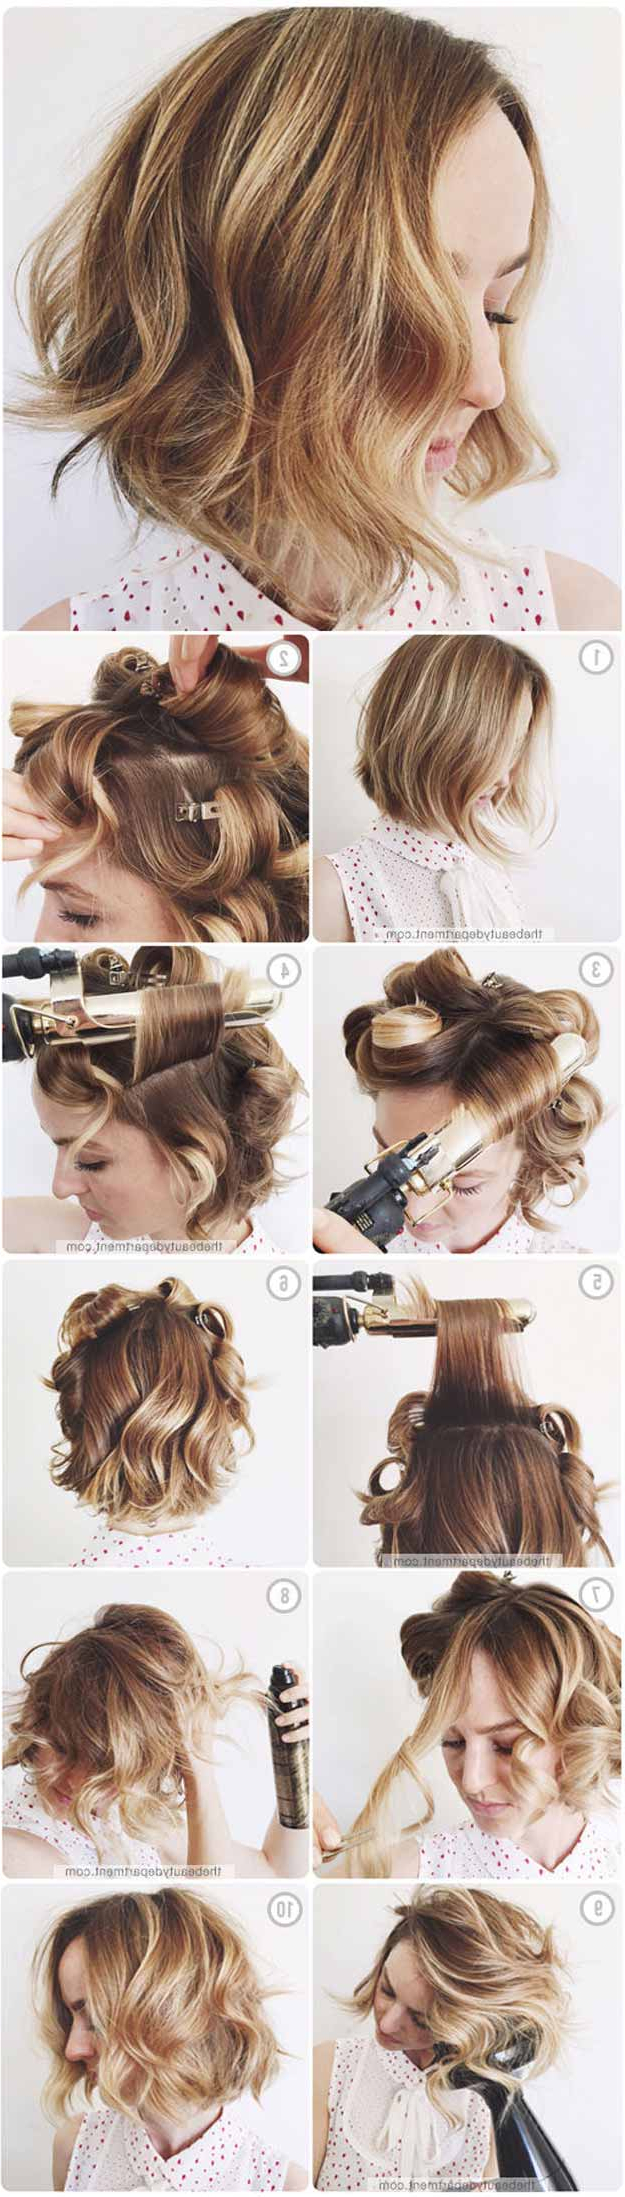 2018 20S Medium Hairstyles Within 33 Best Hairstyles For Your 20S – The Goddess (View 5 of 20)